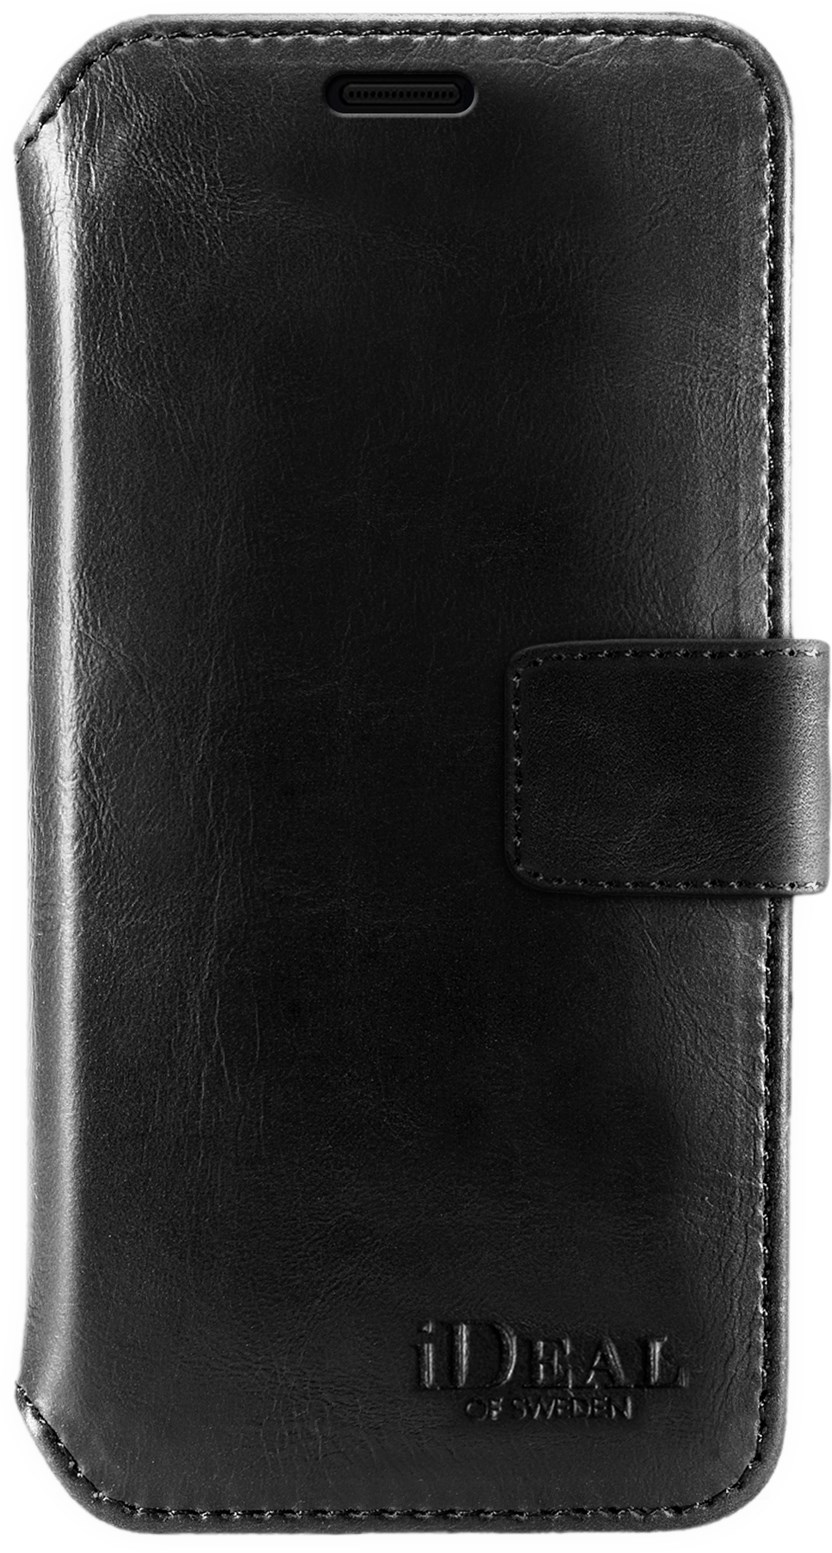 iDeal of Sweden Ideal Sthlm Wallet Samsung Galaxy S10 Black